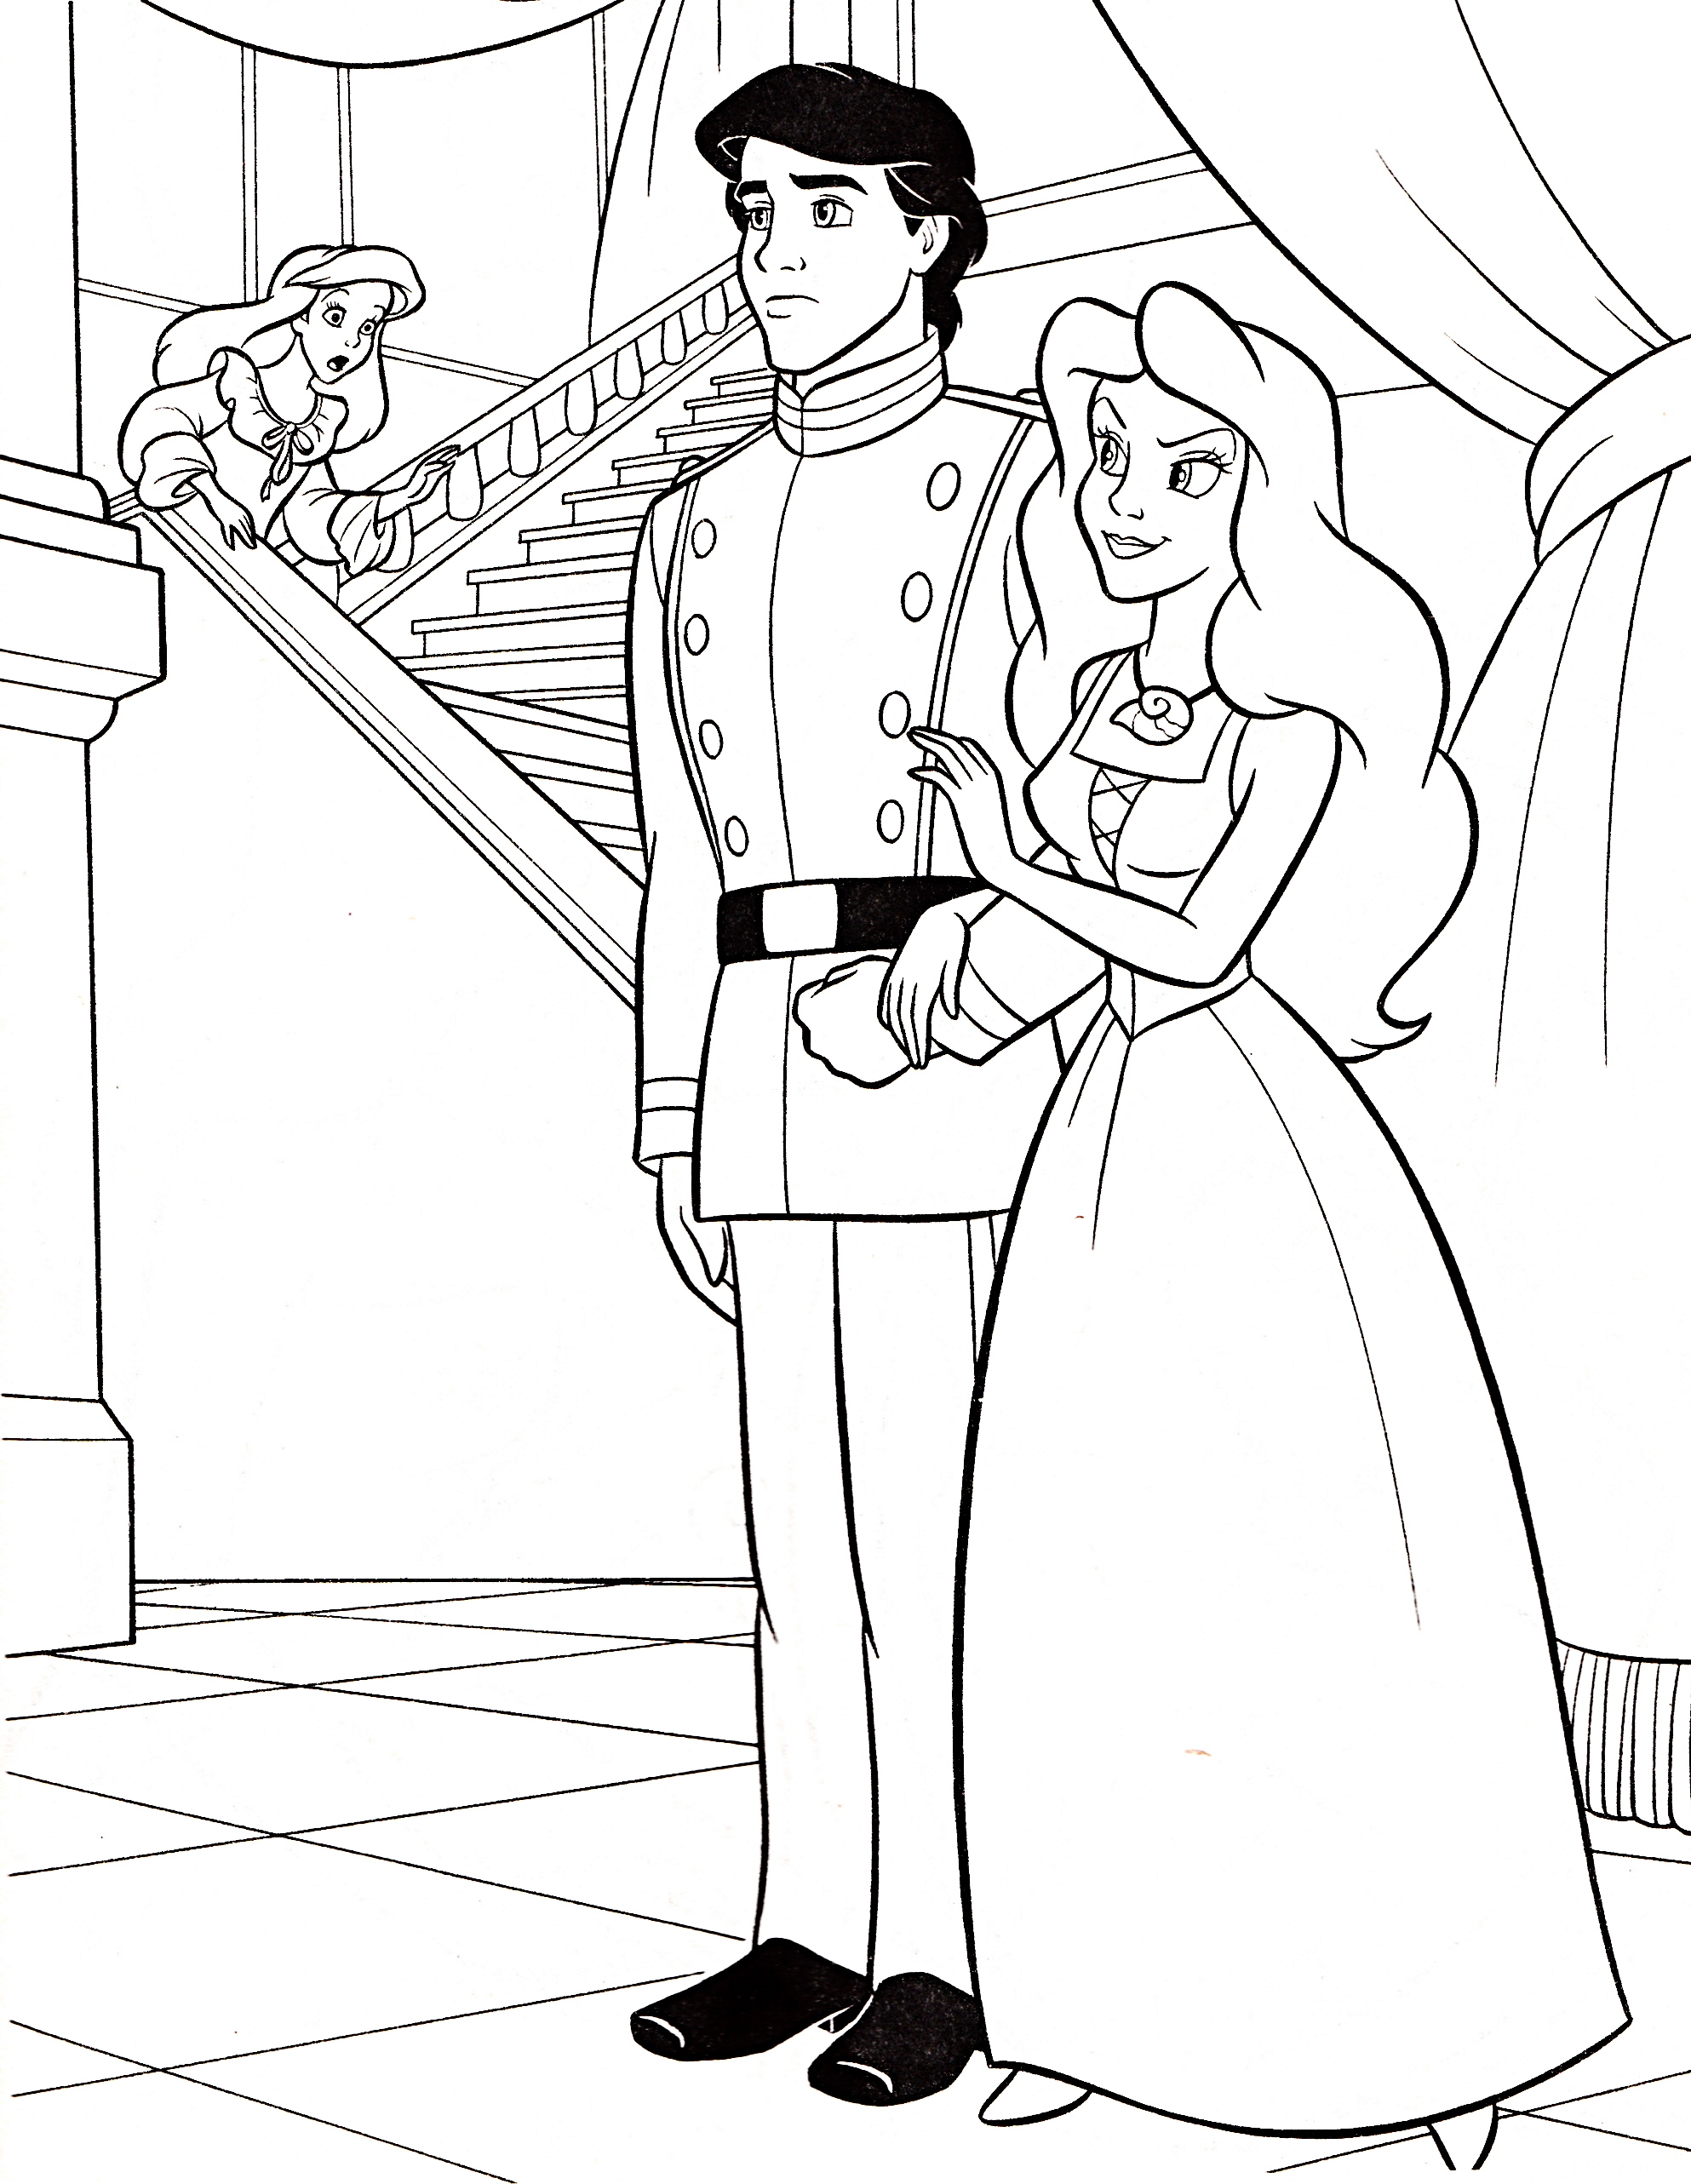 coloring pages of vanessa h - photo#23